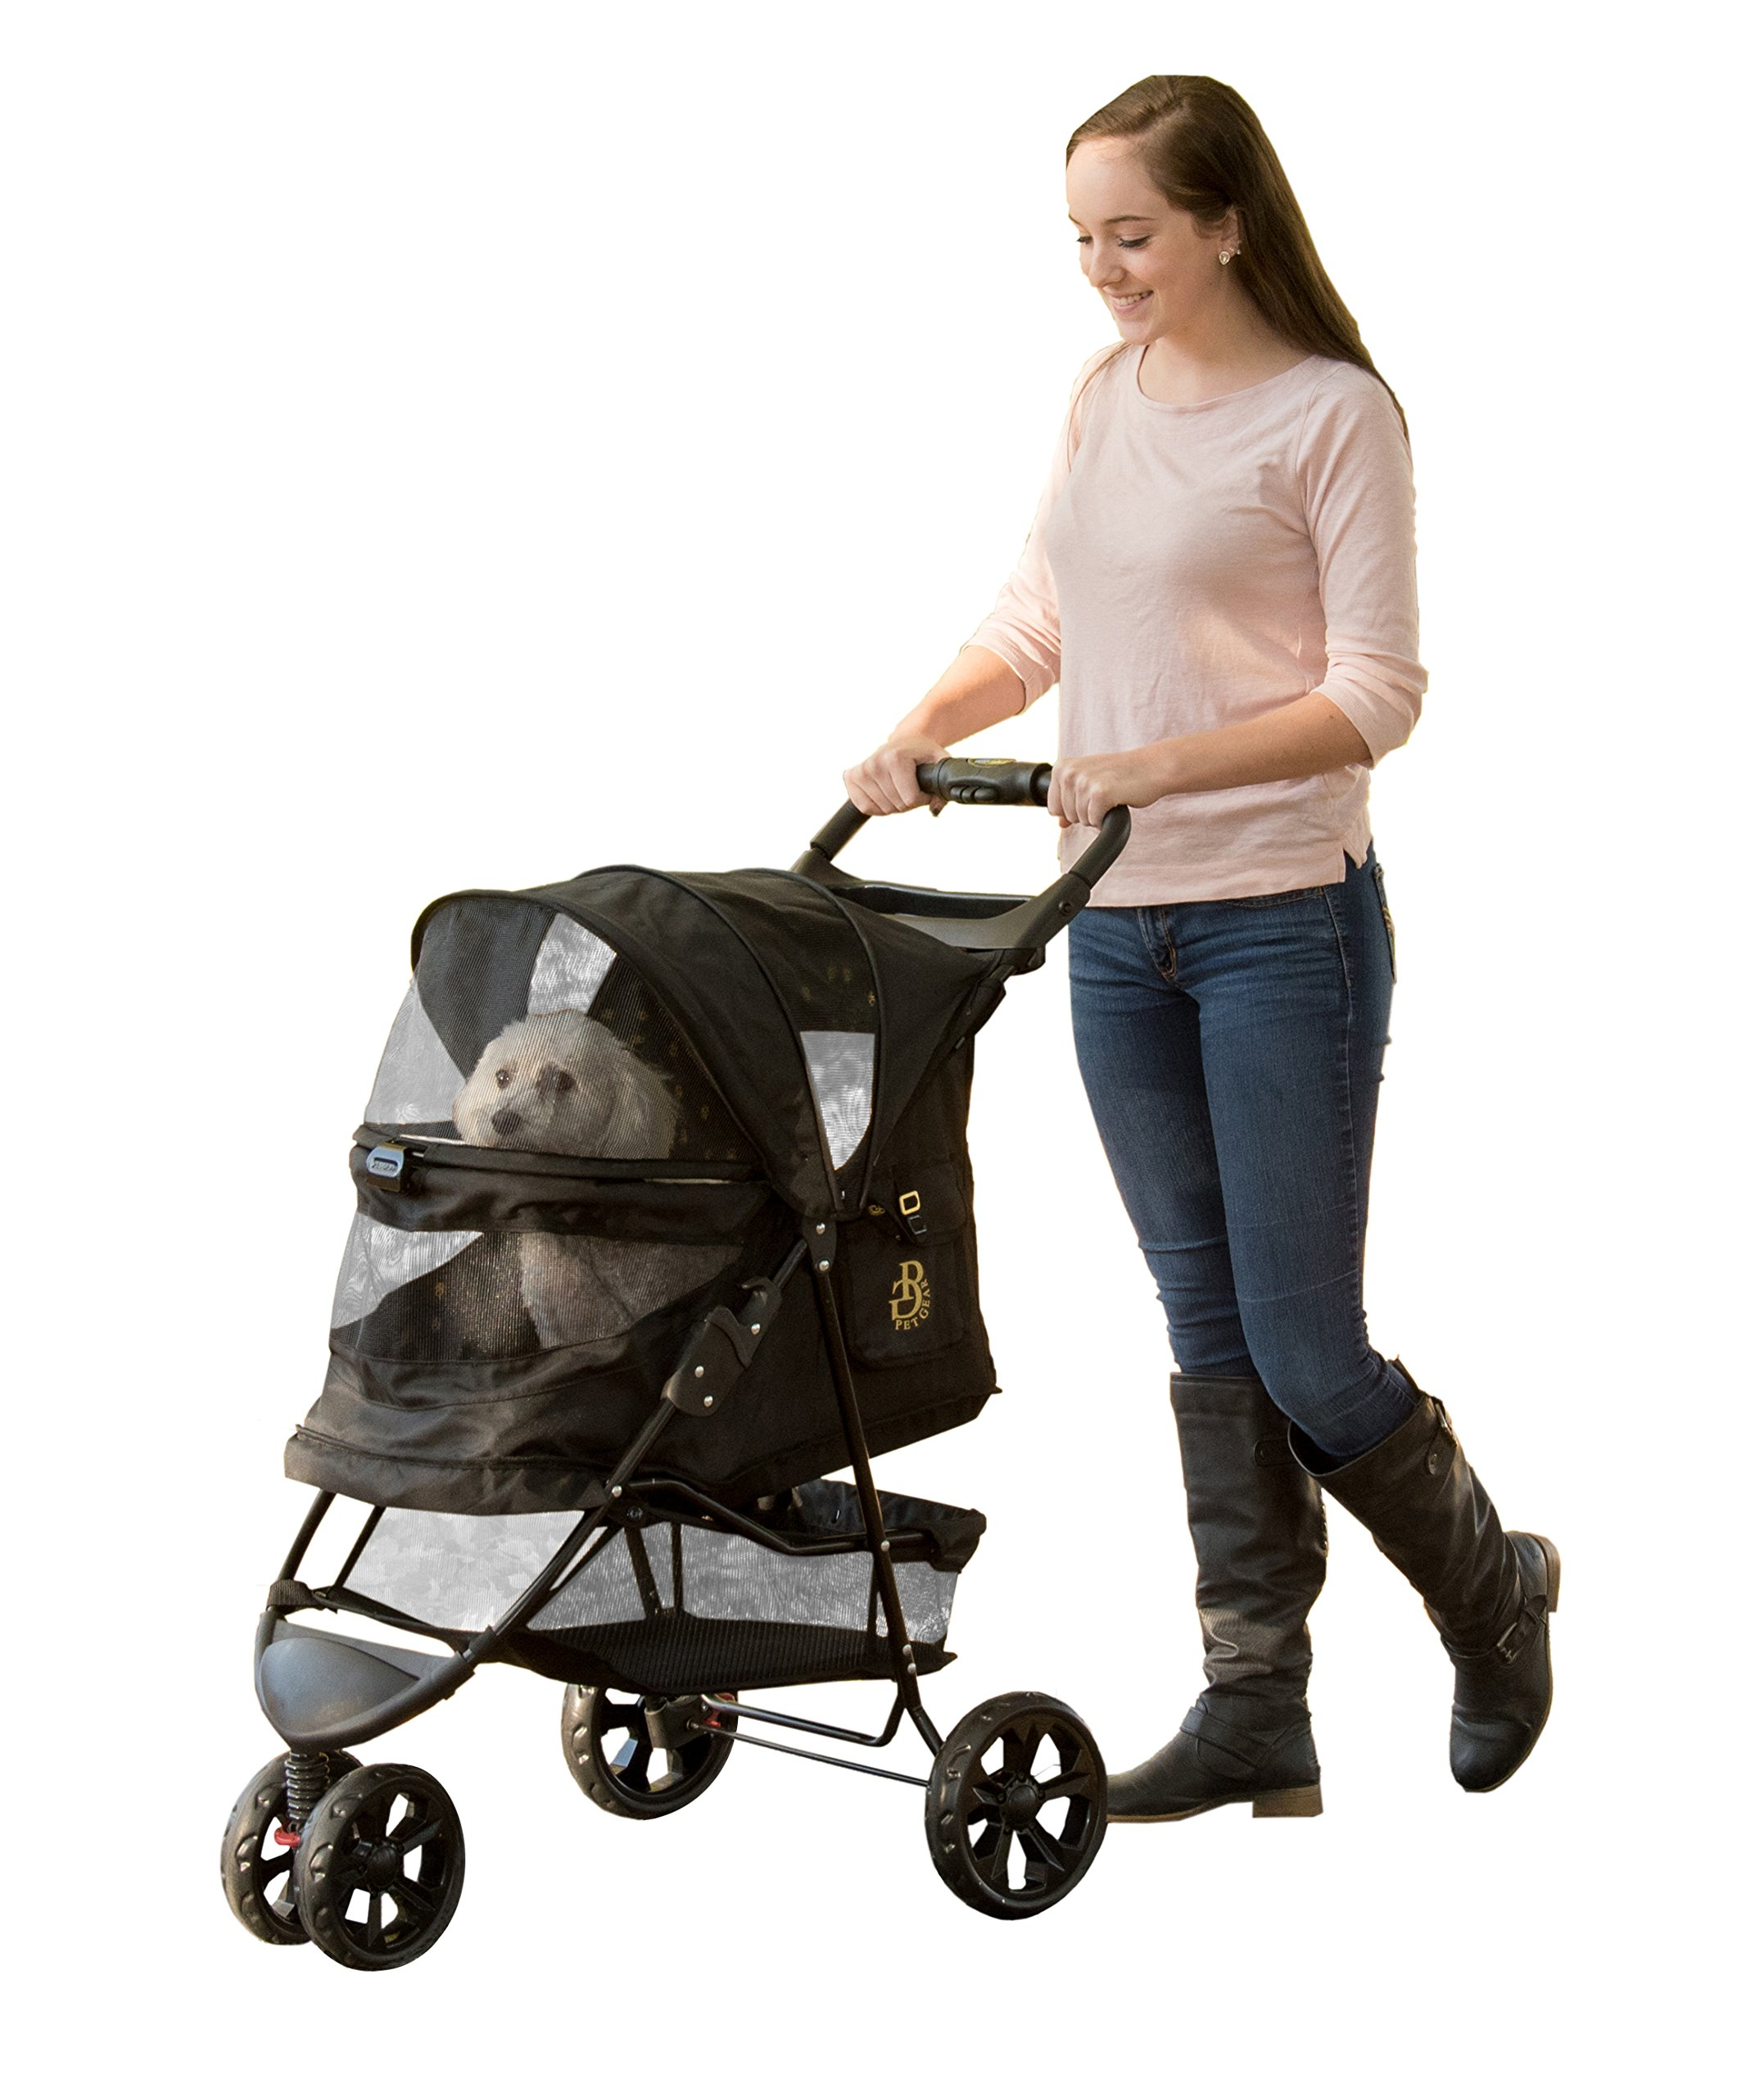 Pet Gear PG8250NZGM No-Zip Special Edition Stroller with Zipperless Entry, Gold Monogram